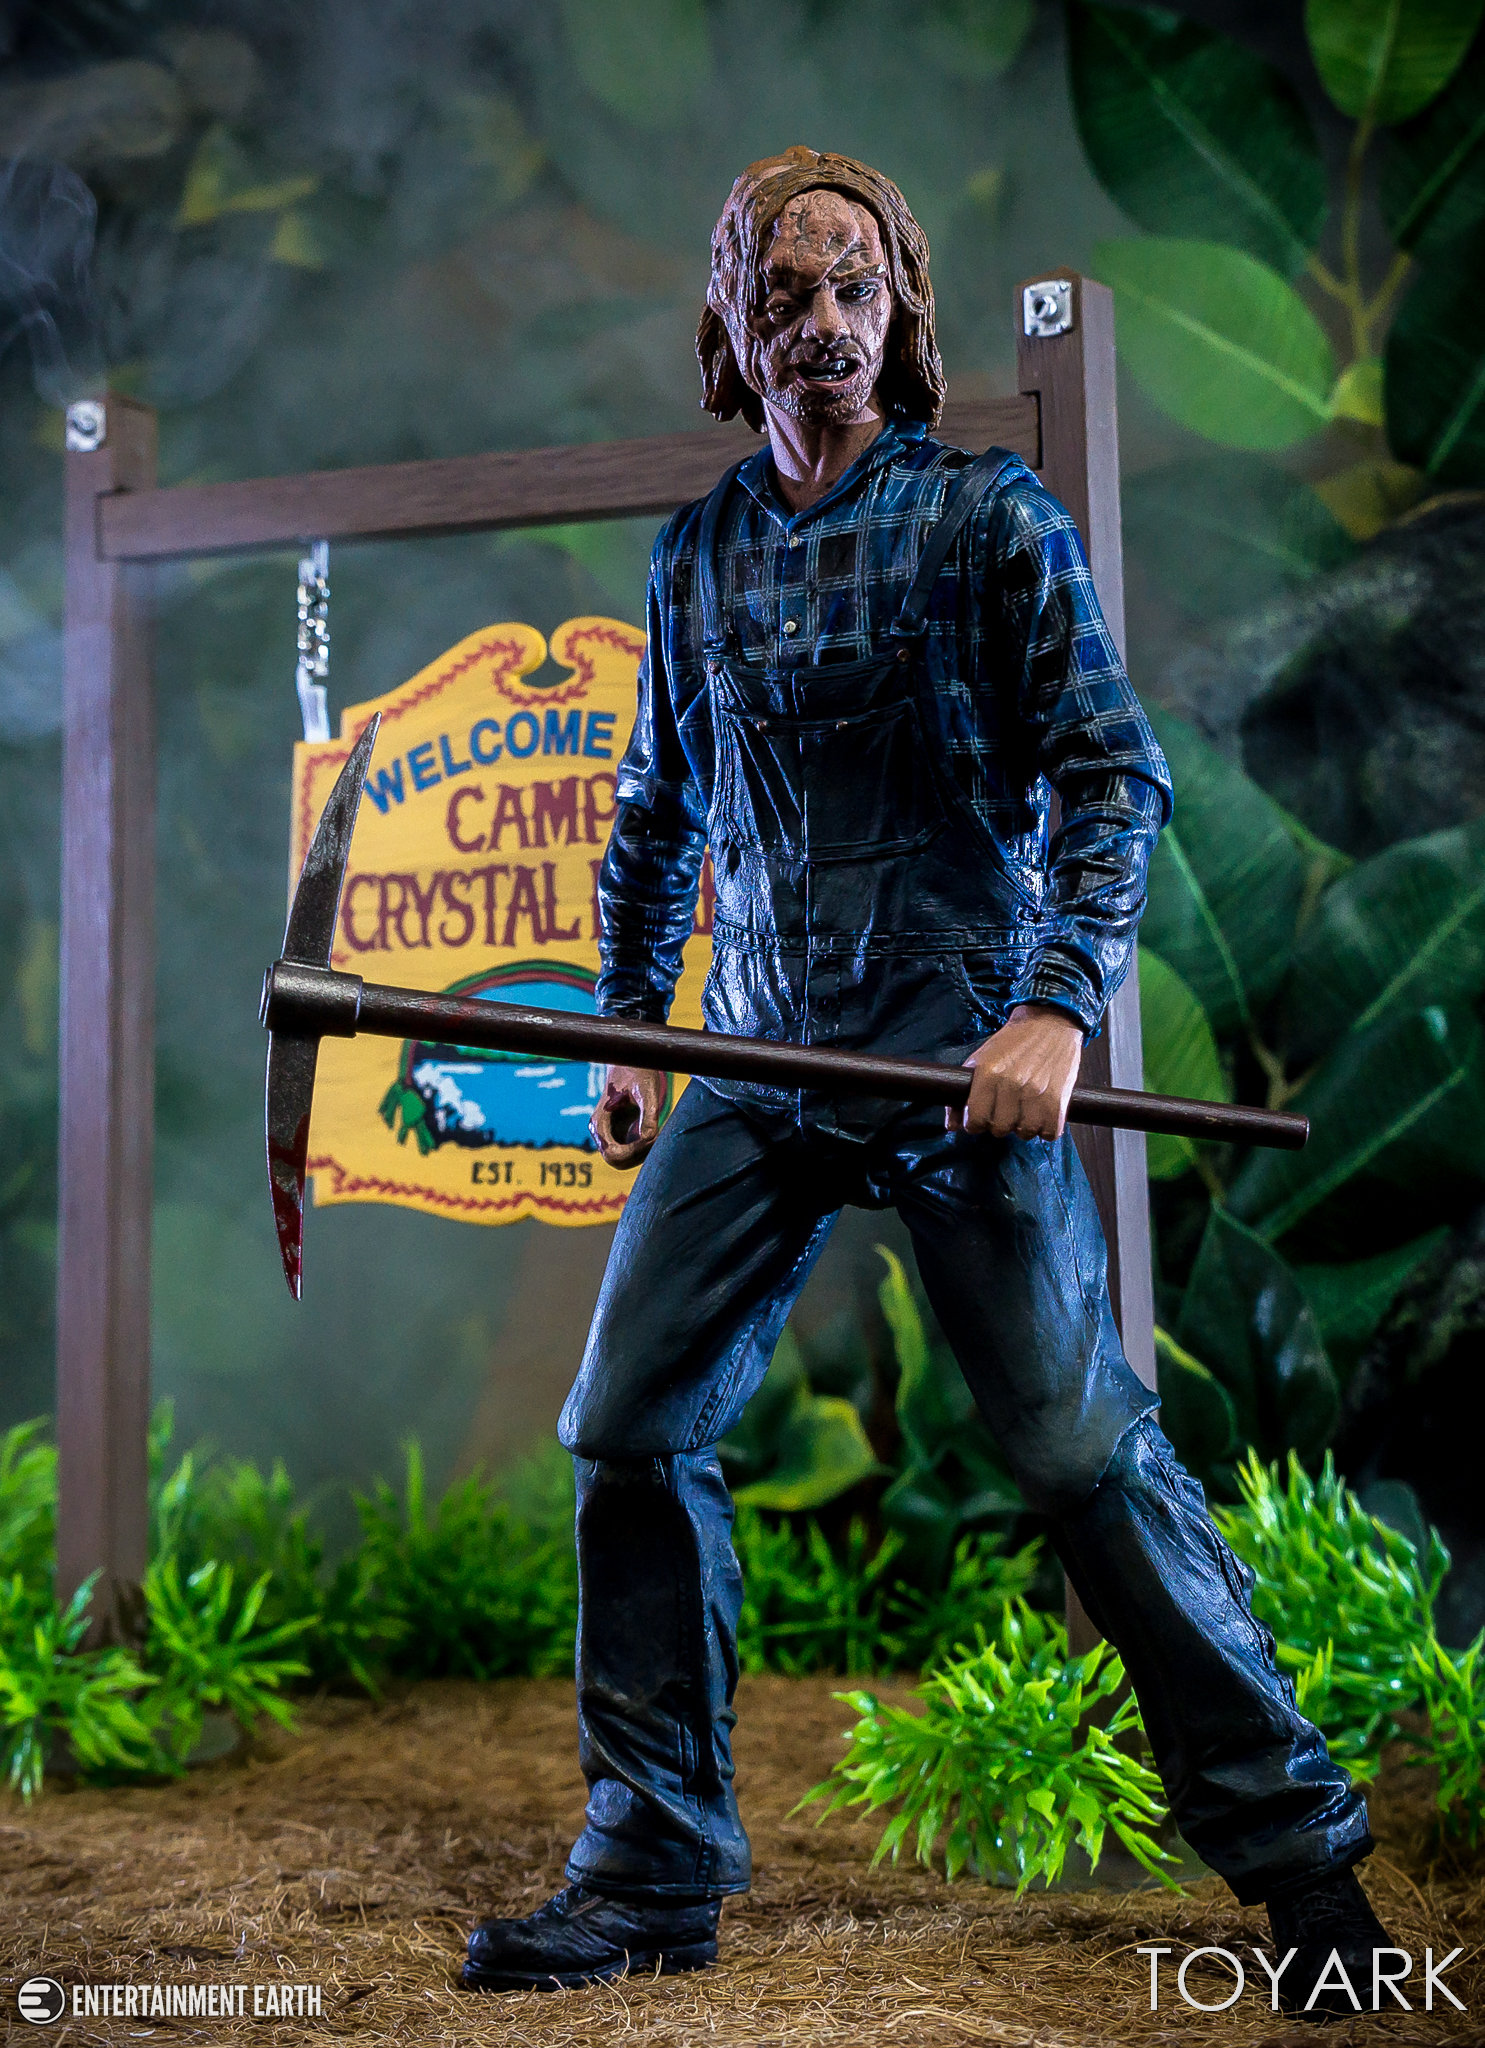 https://news.toyark.com/wp-content/uploads/sites/4/2018/08/NECA-Friday-the-13th-Part-2-Jason-026.jpg